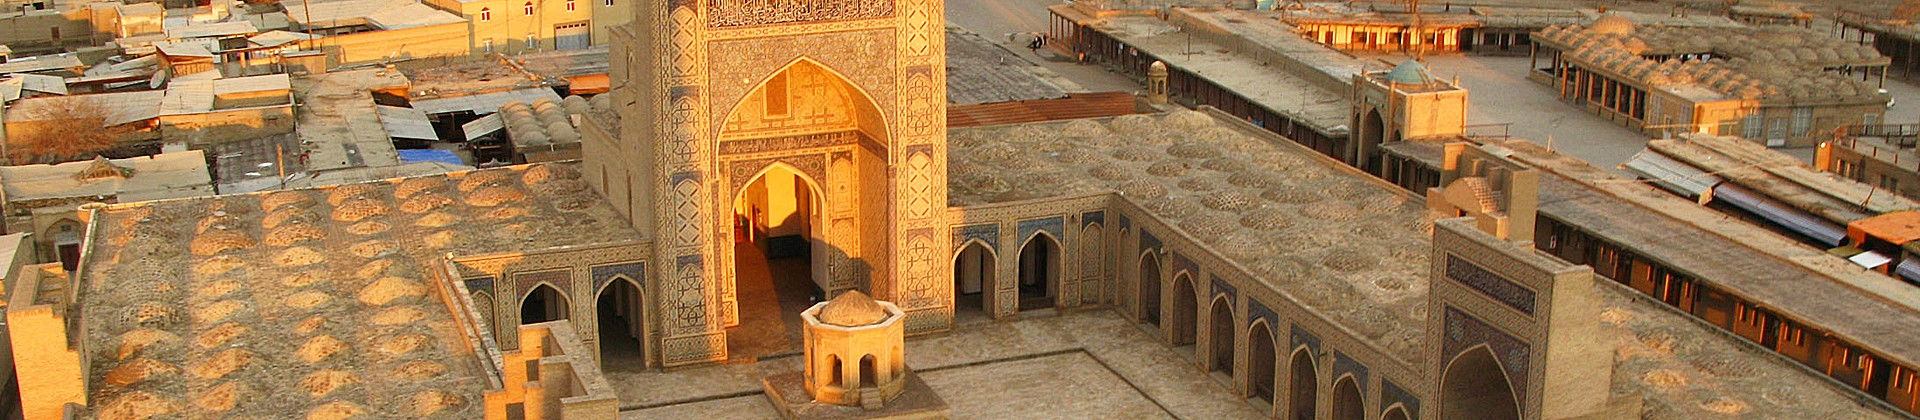 Guaranteed Departure Uzbekistan tour 2019-2020 - 1